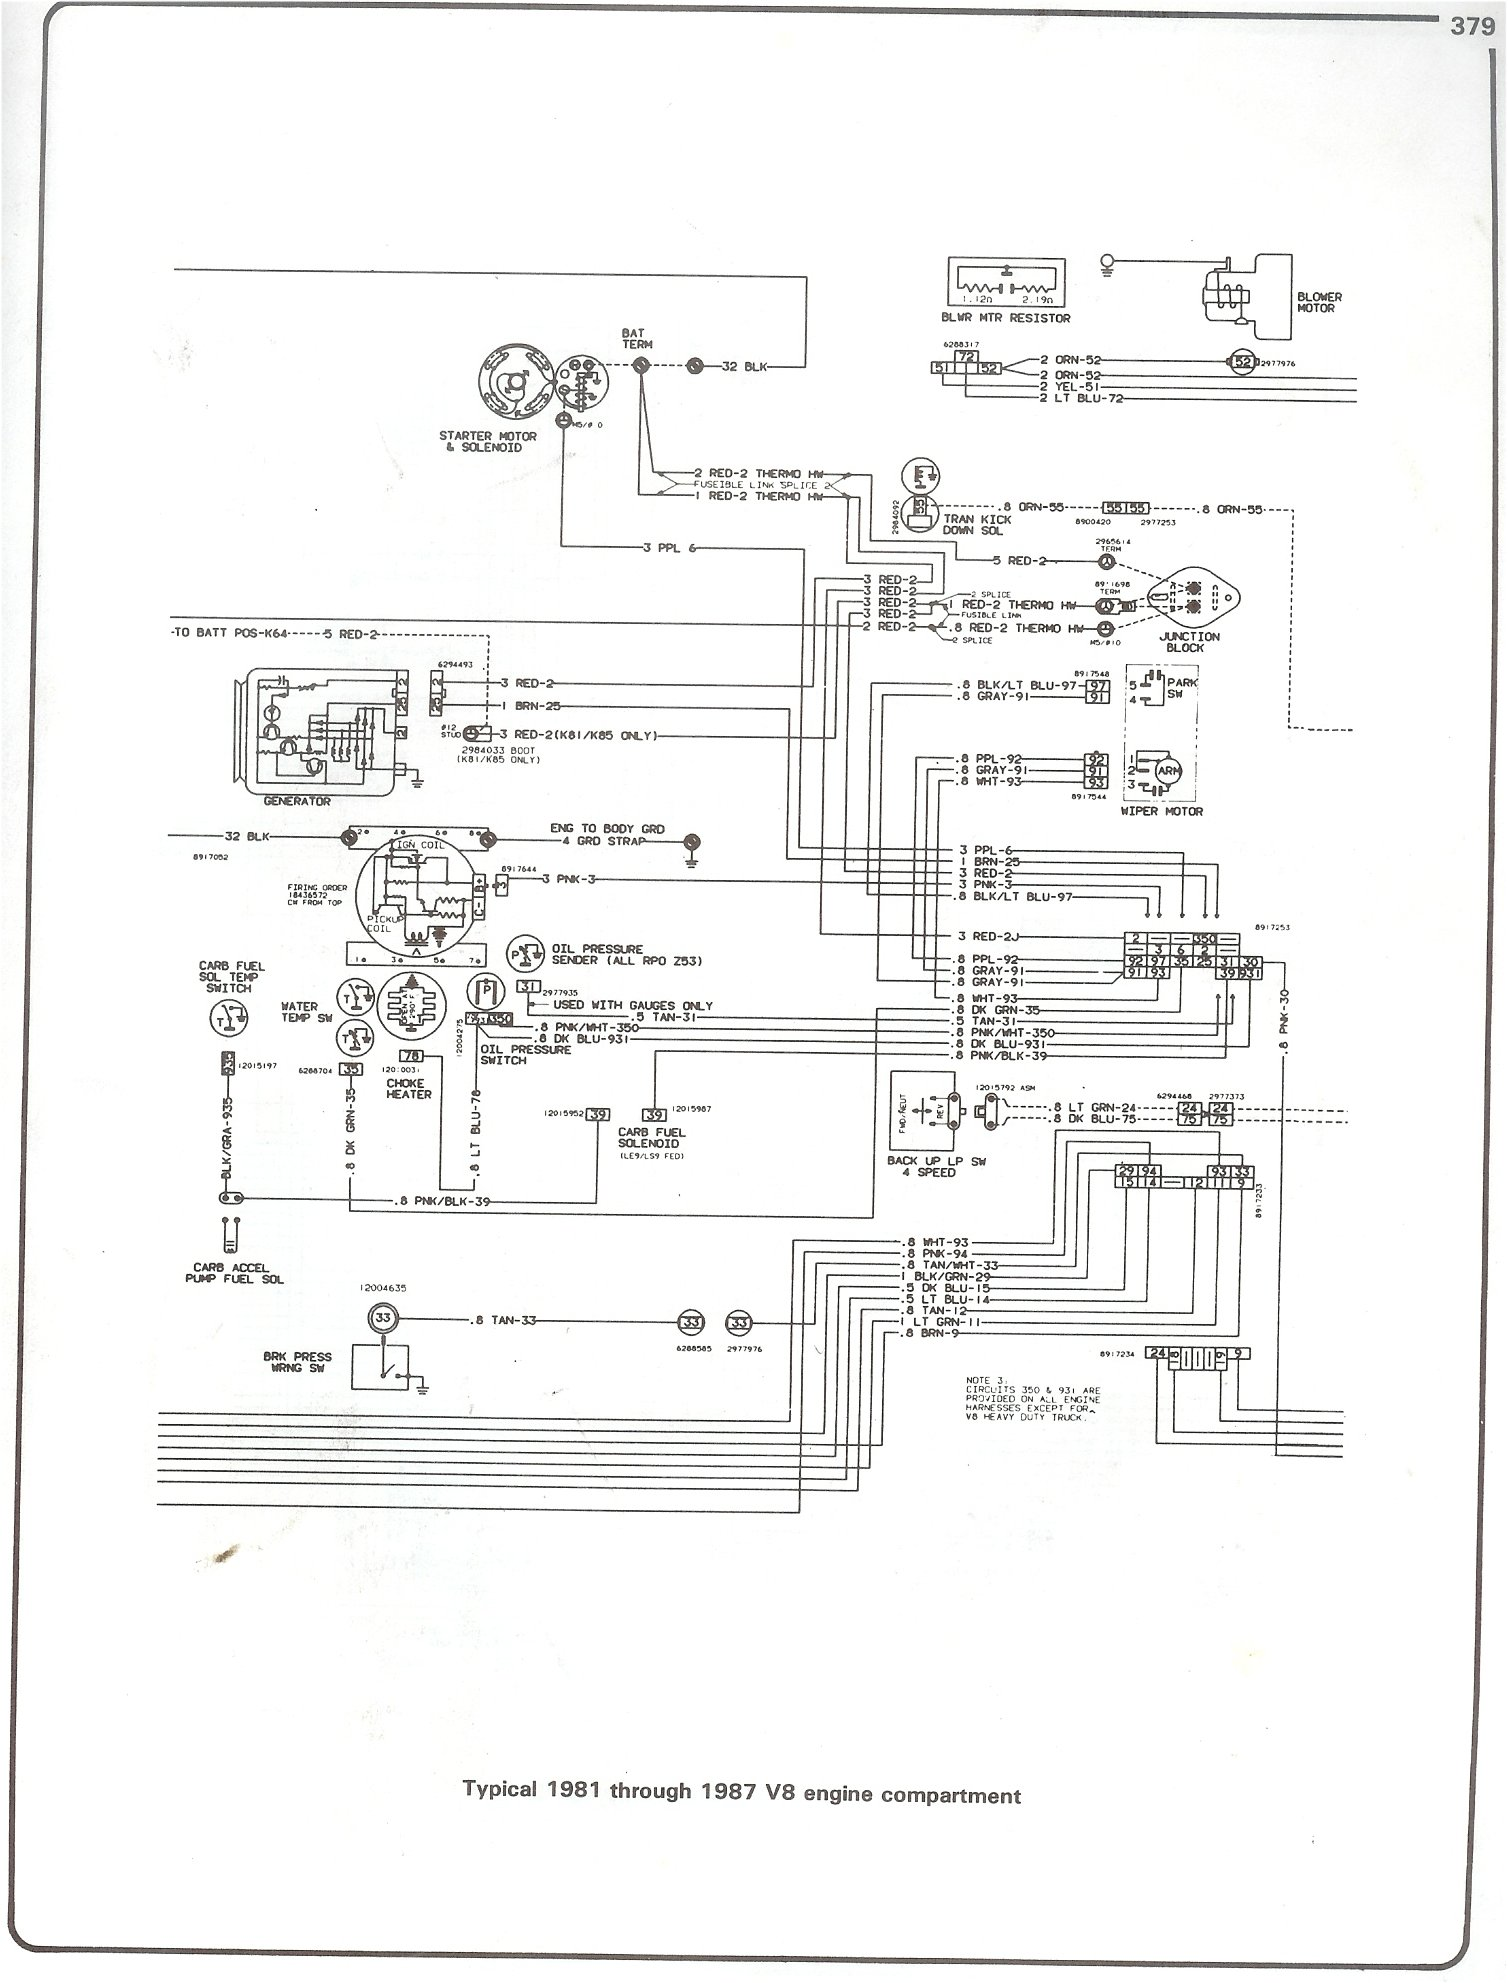 2005 F150 Ac Wiring Diagram Simple Guide About 06 F350 Trailer Complete 73 87 Diagrams Ford 1997